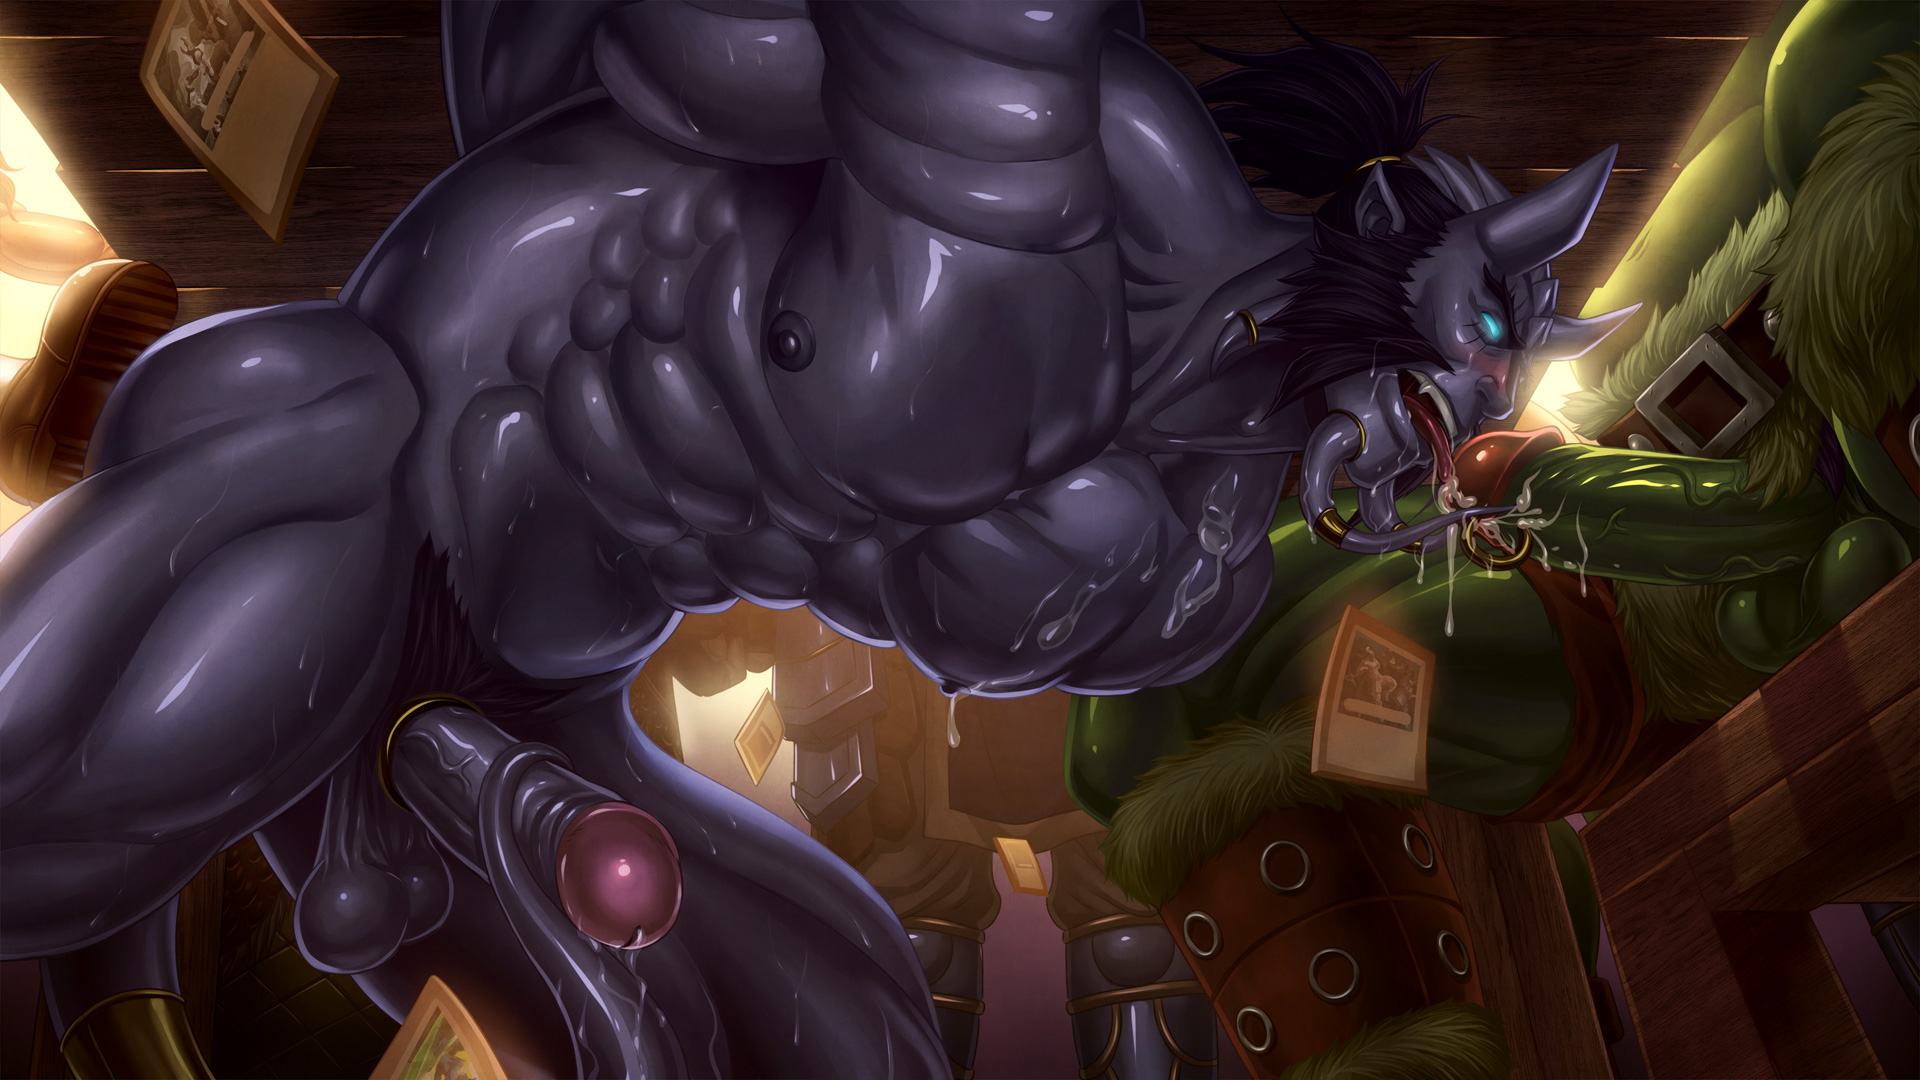 Hot naked world of warcraft orcs nackt scenes